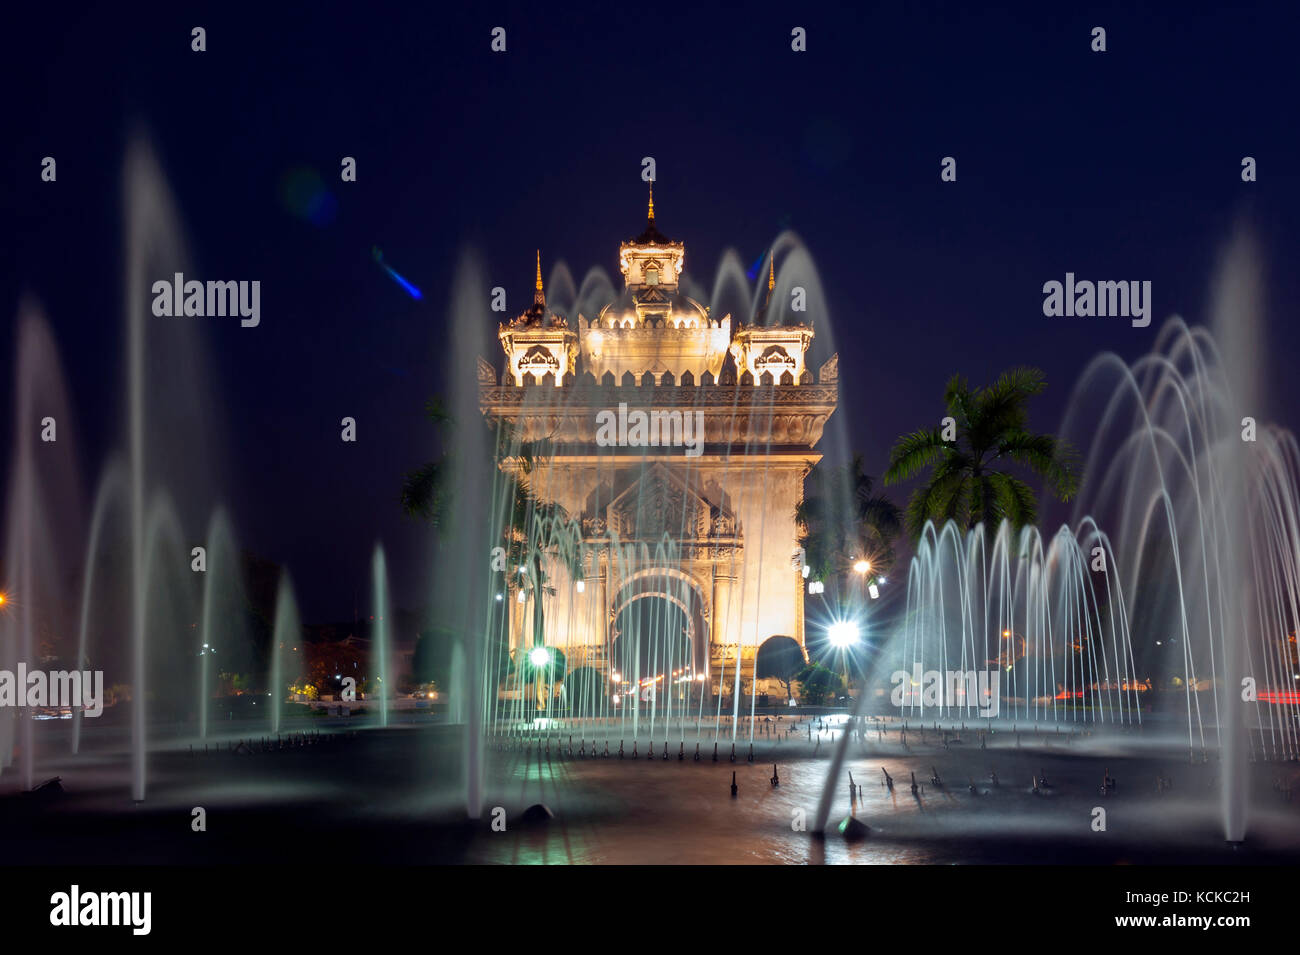 Patuxay or Patuxai Victory Monument, architectural landmark of Vientiane, capital city of Laos - Stock Image